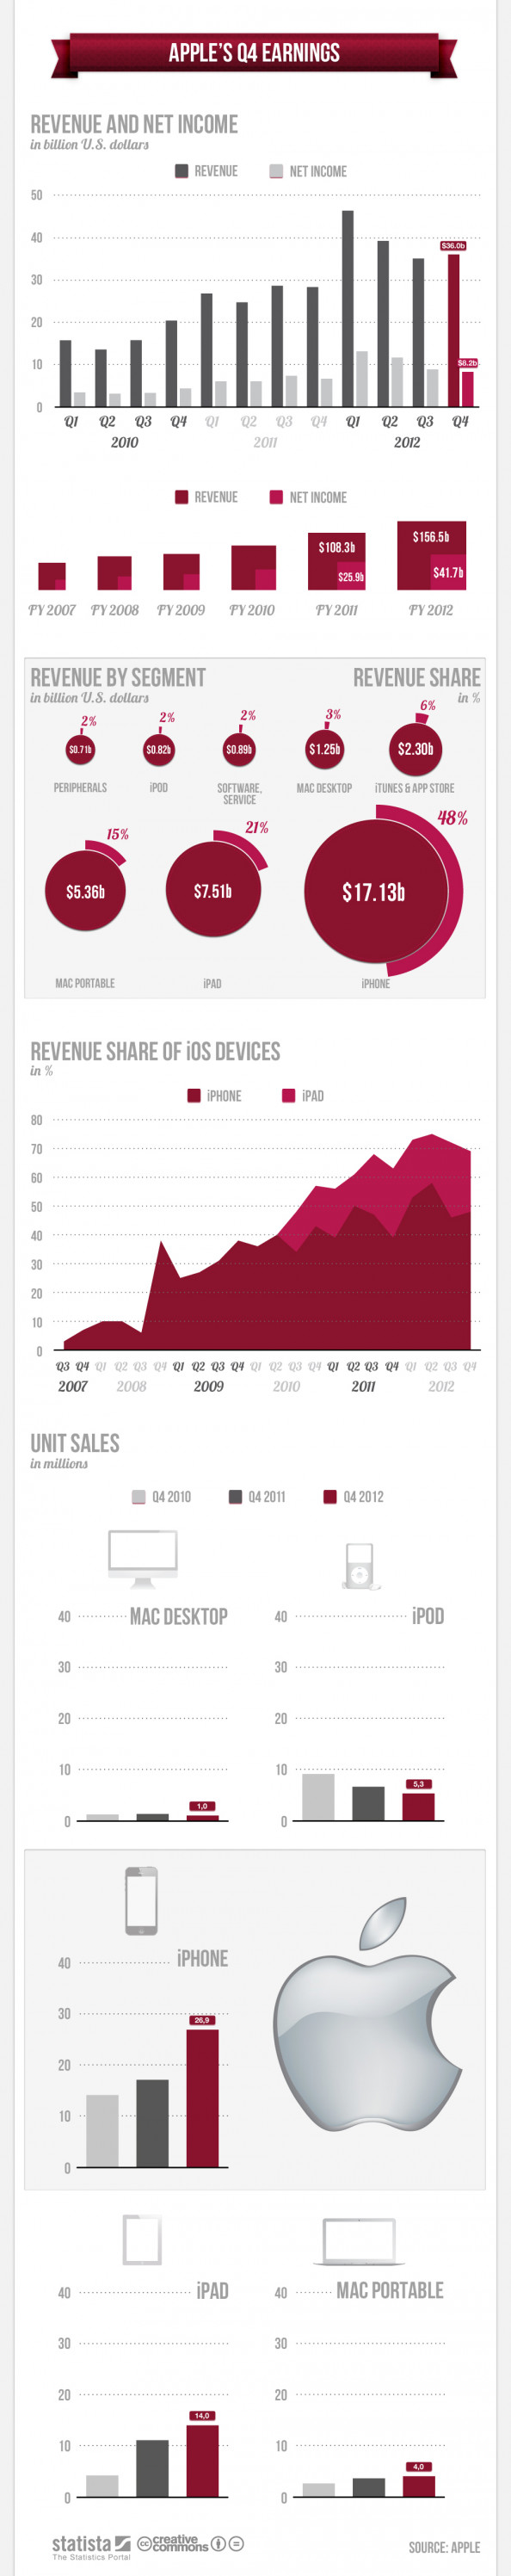 Apple's Q4 Earnings Infographic